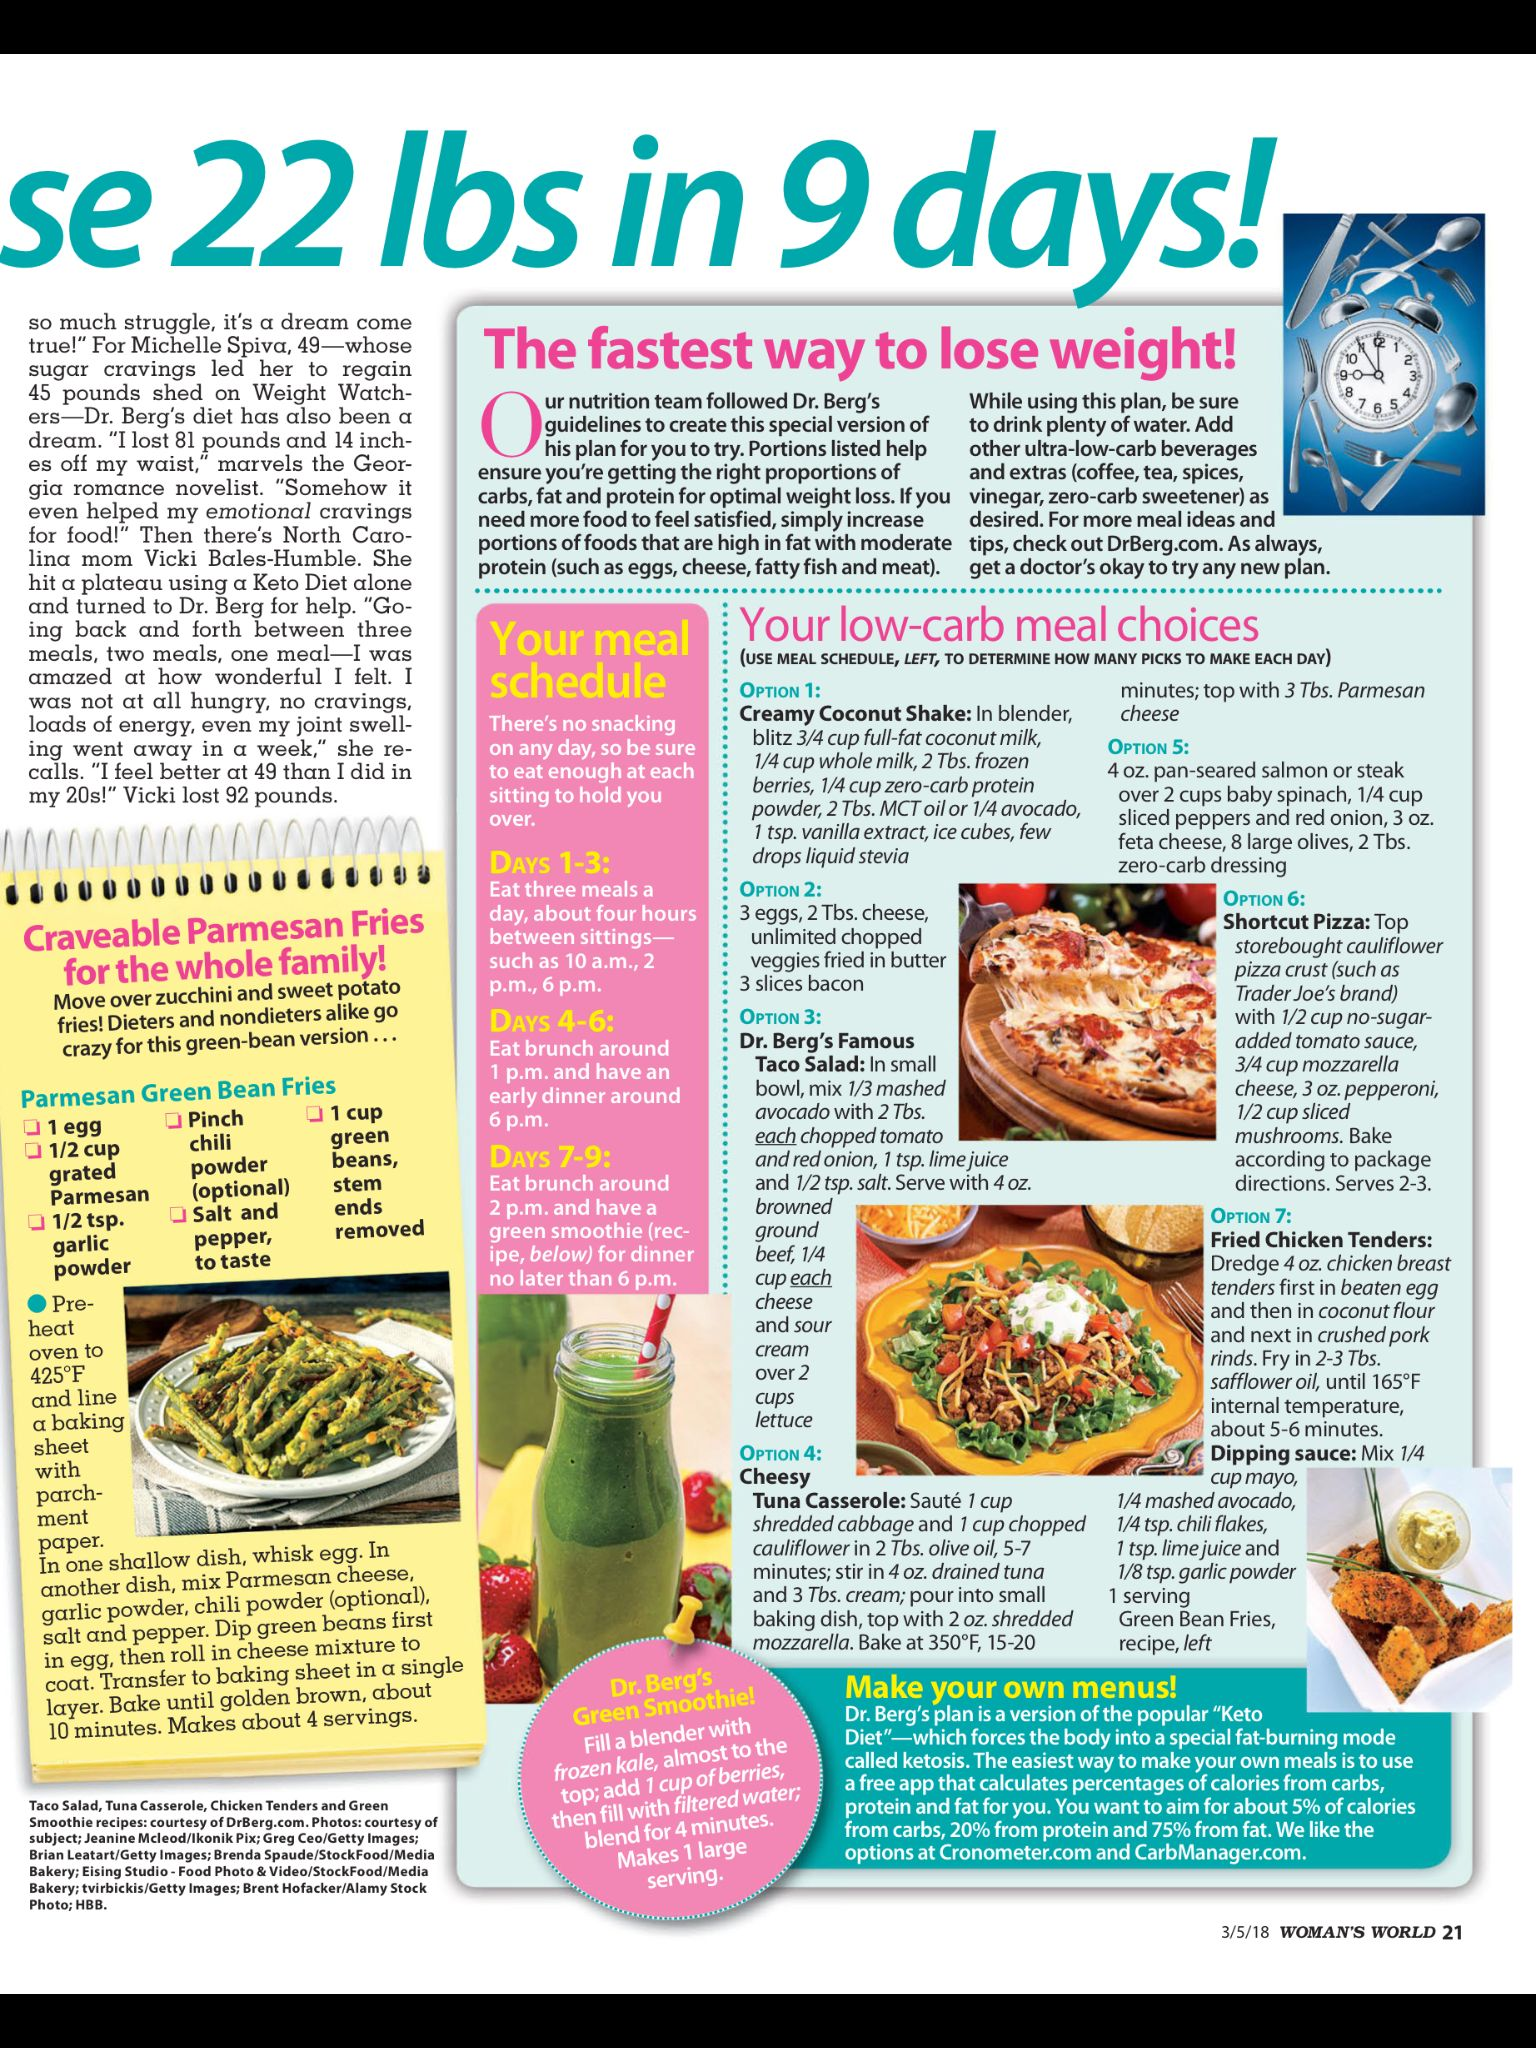 turbo keto diet womans world magazine